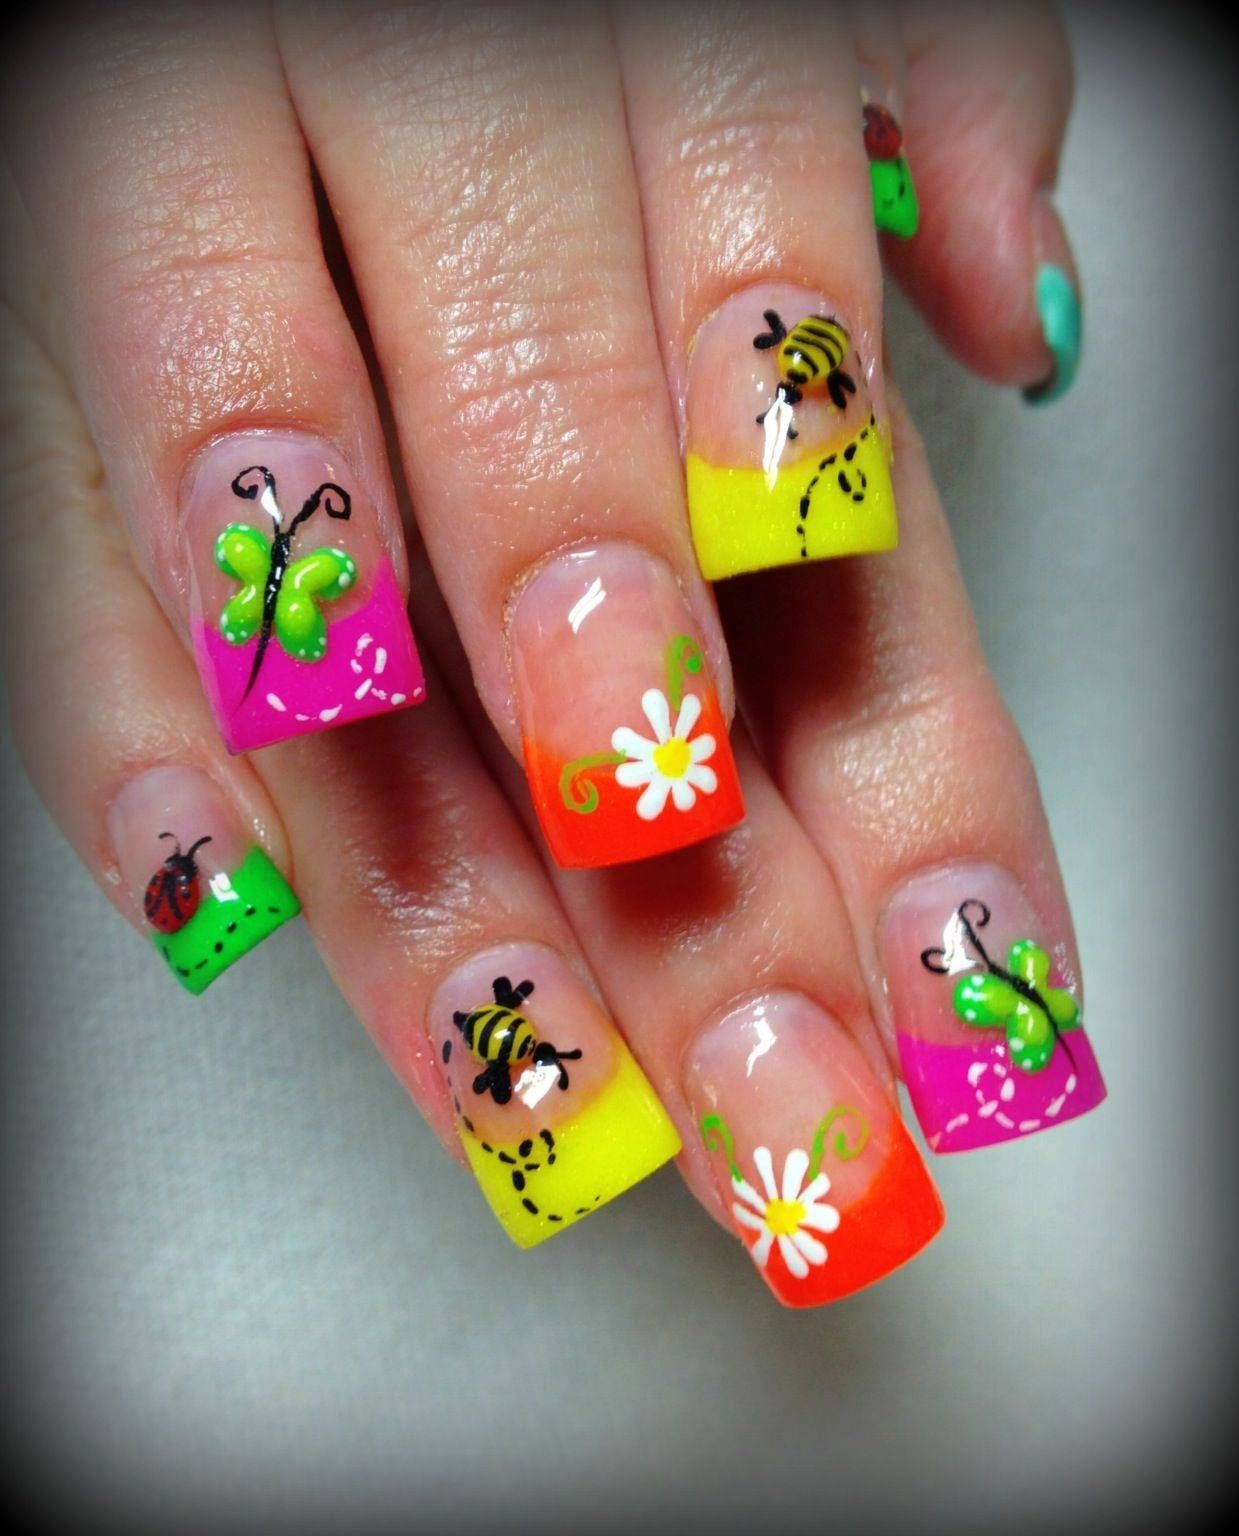 363608-nail-designs-summer-colorful-nail-art.jpg 1,239×1,536 pixels - 363608-nail-designs-summer-colorful-nail-art.jpg 1,239×1,536 Pixels